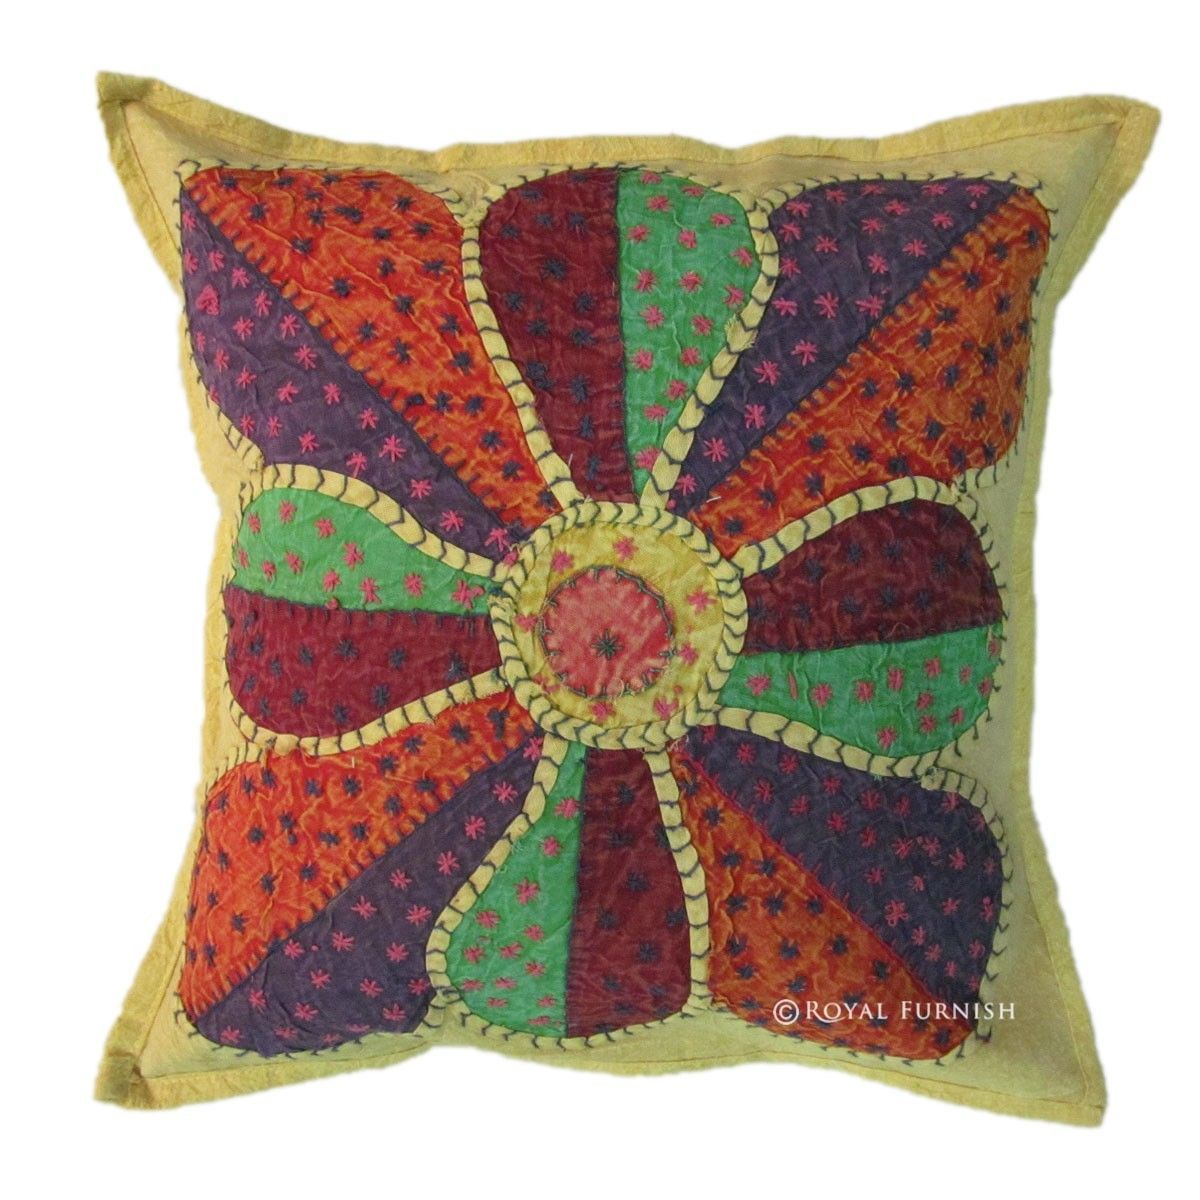 Handmade Decorative Throw Pillows : Indian Handmade Decorative Appliqued Accent Multi Patchwork Pillow - RoyalFurnish.com